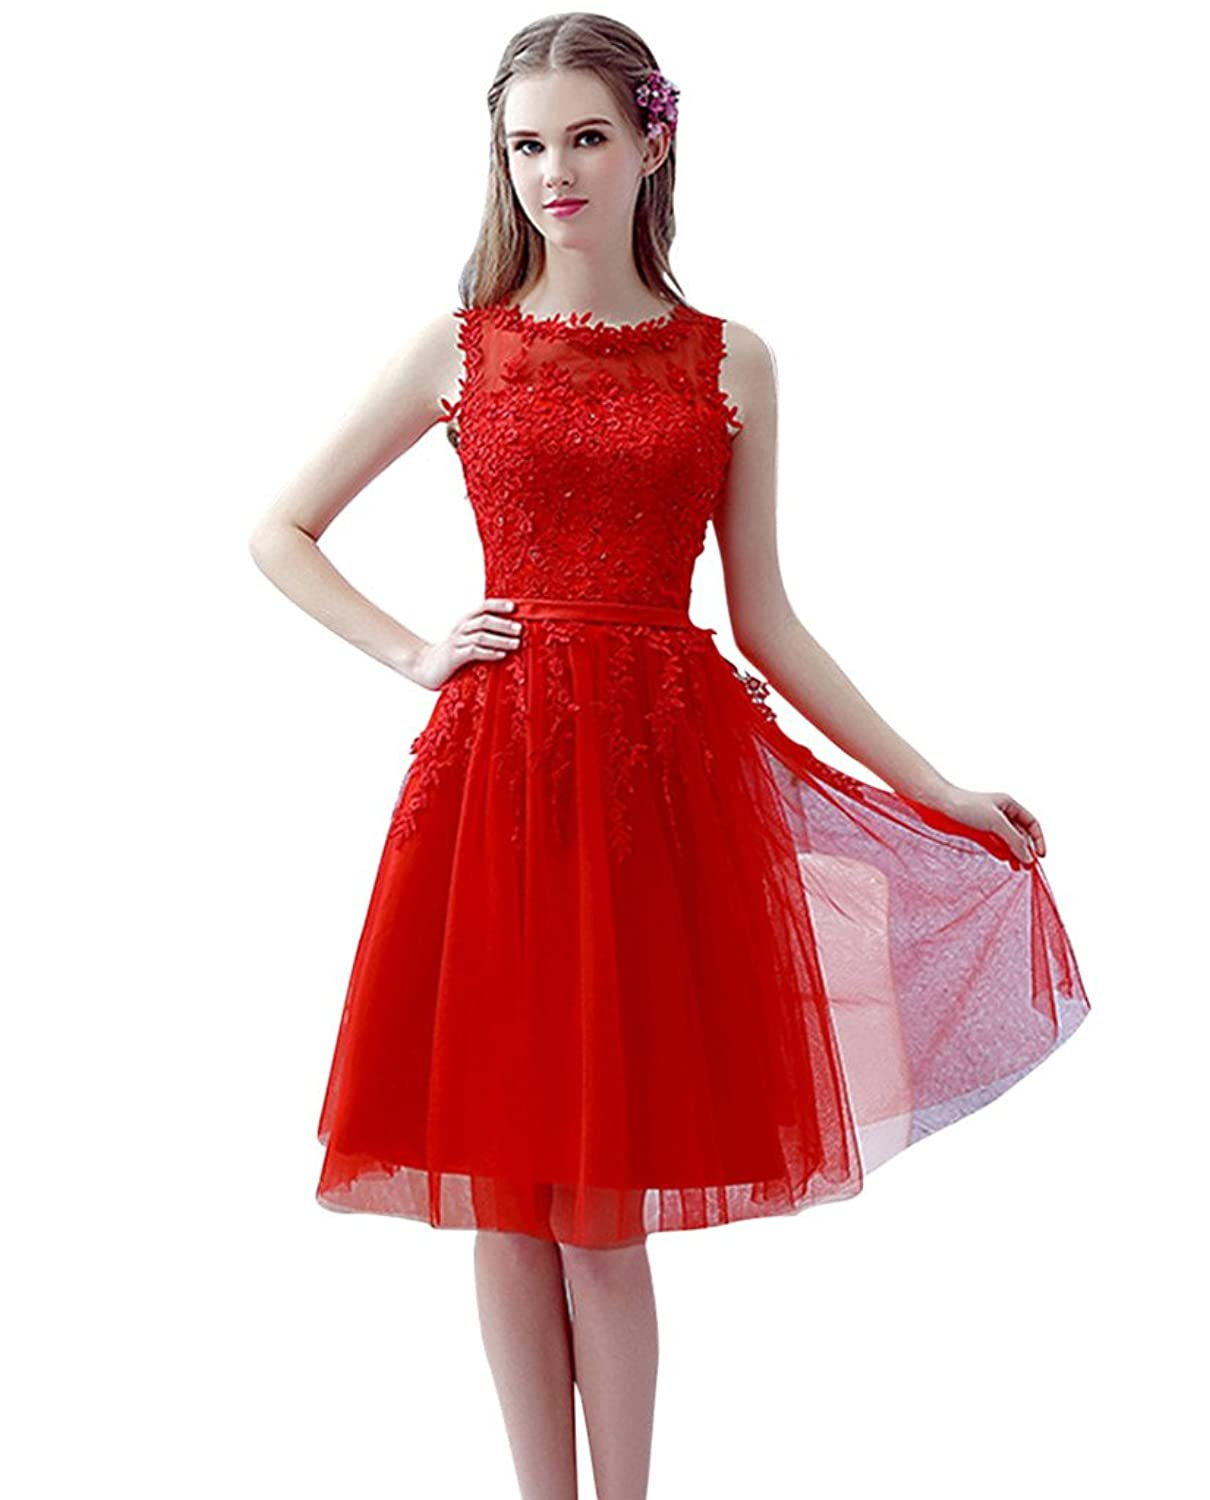 Vimans? Girl's Short Red Lace Sleeveless Bridal Wedding Dress for Reception